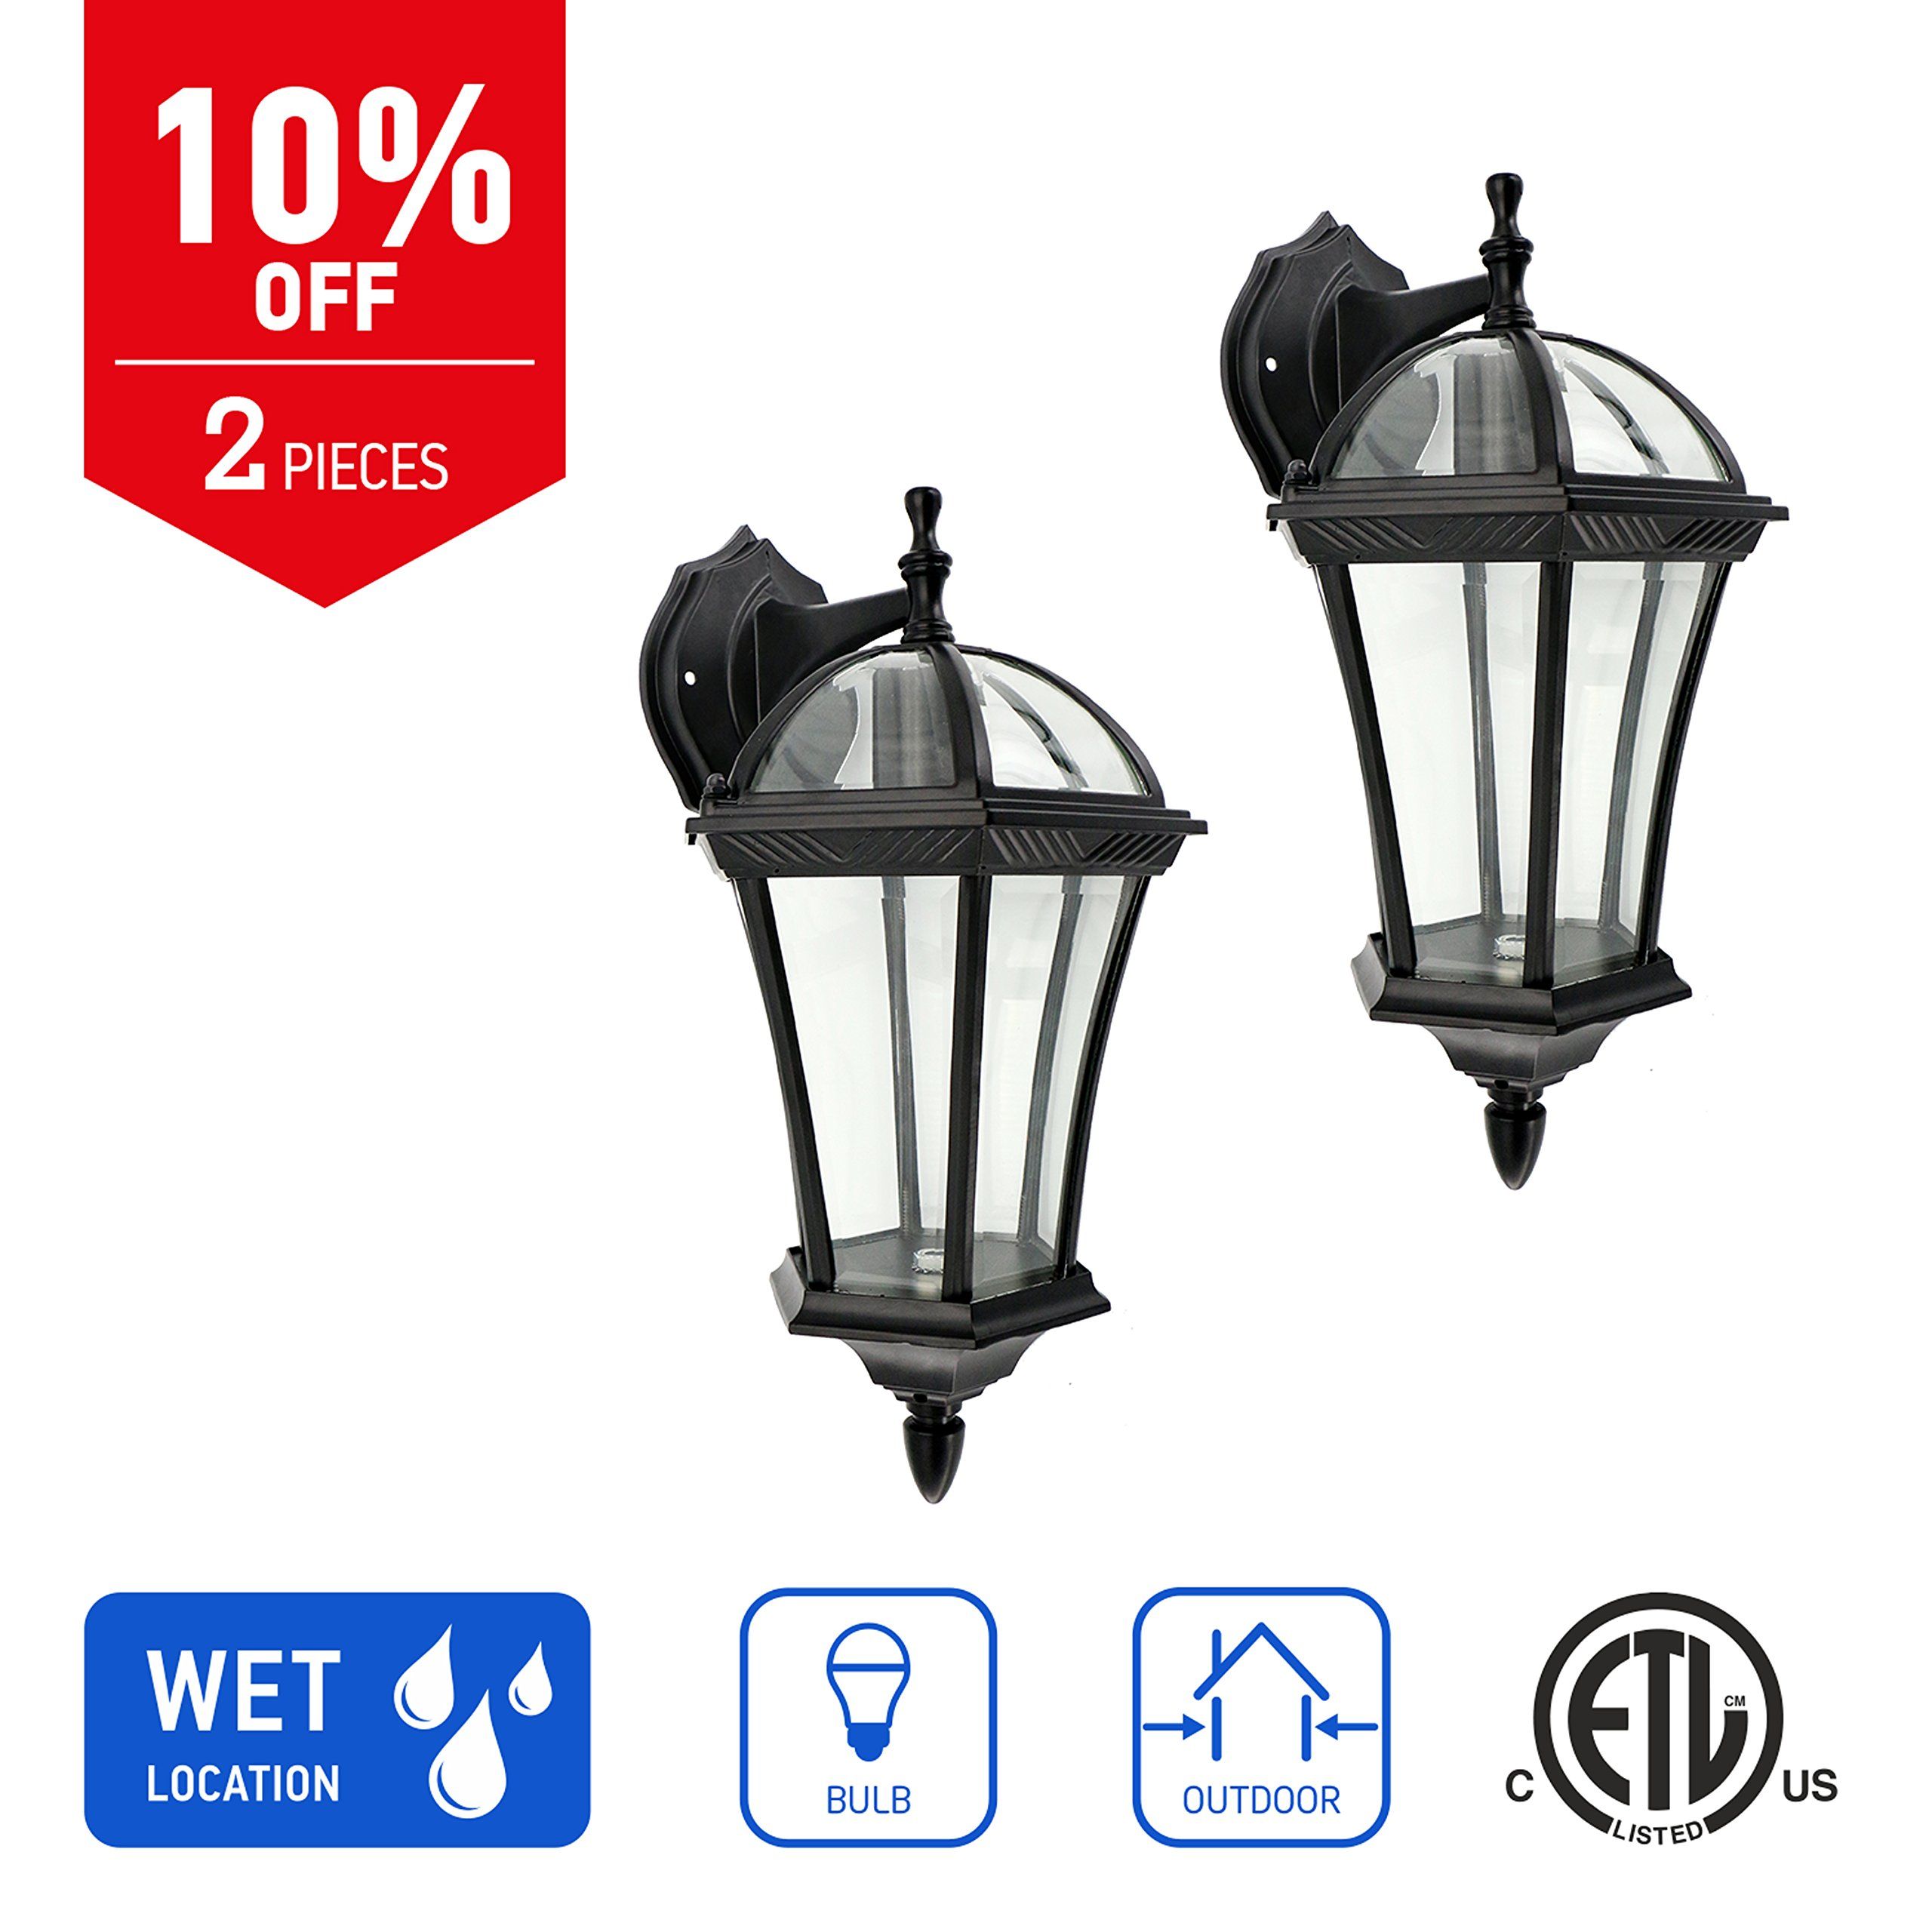 IN HOME 1-Light Outdoor Exterior Wall Down Lantern, Traditional Porch Patio Lighting Fixture L06 with One E26 Base, Water-Proof, Black Cast Aluminum Housing, Clear Glass Panels, (2 Pack) ETL Listed